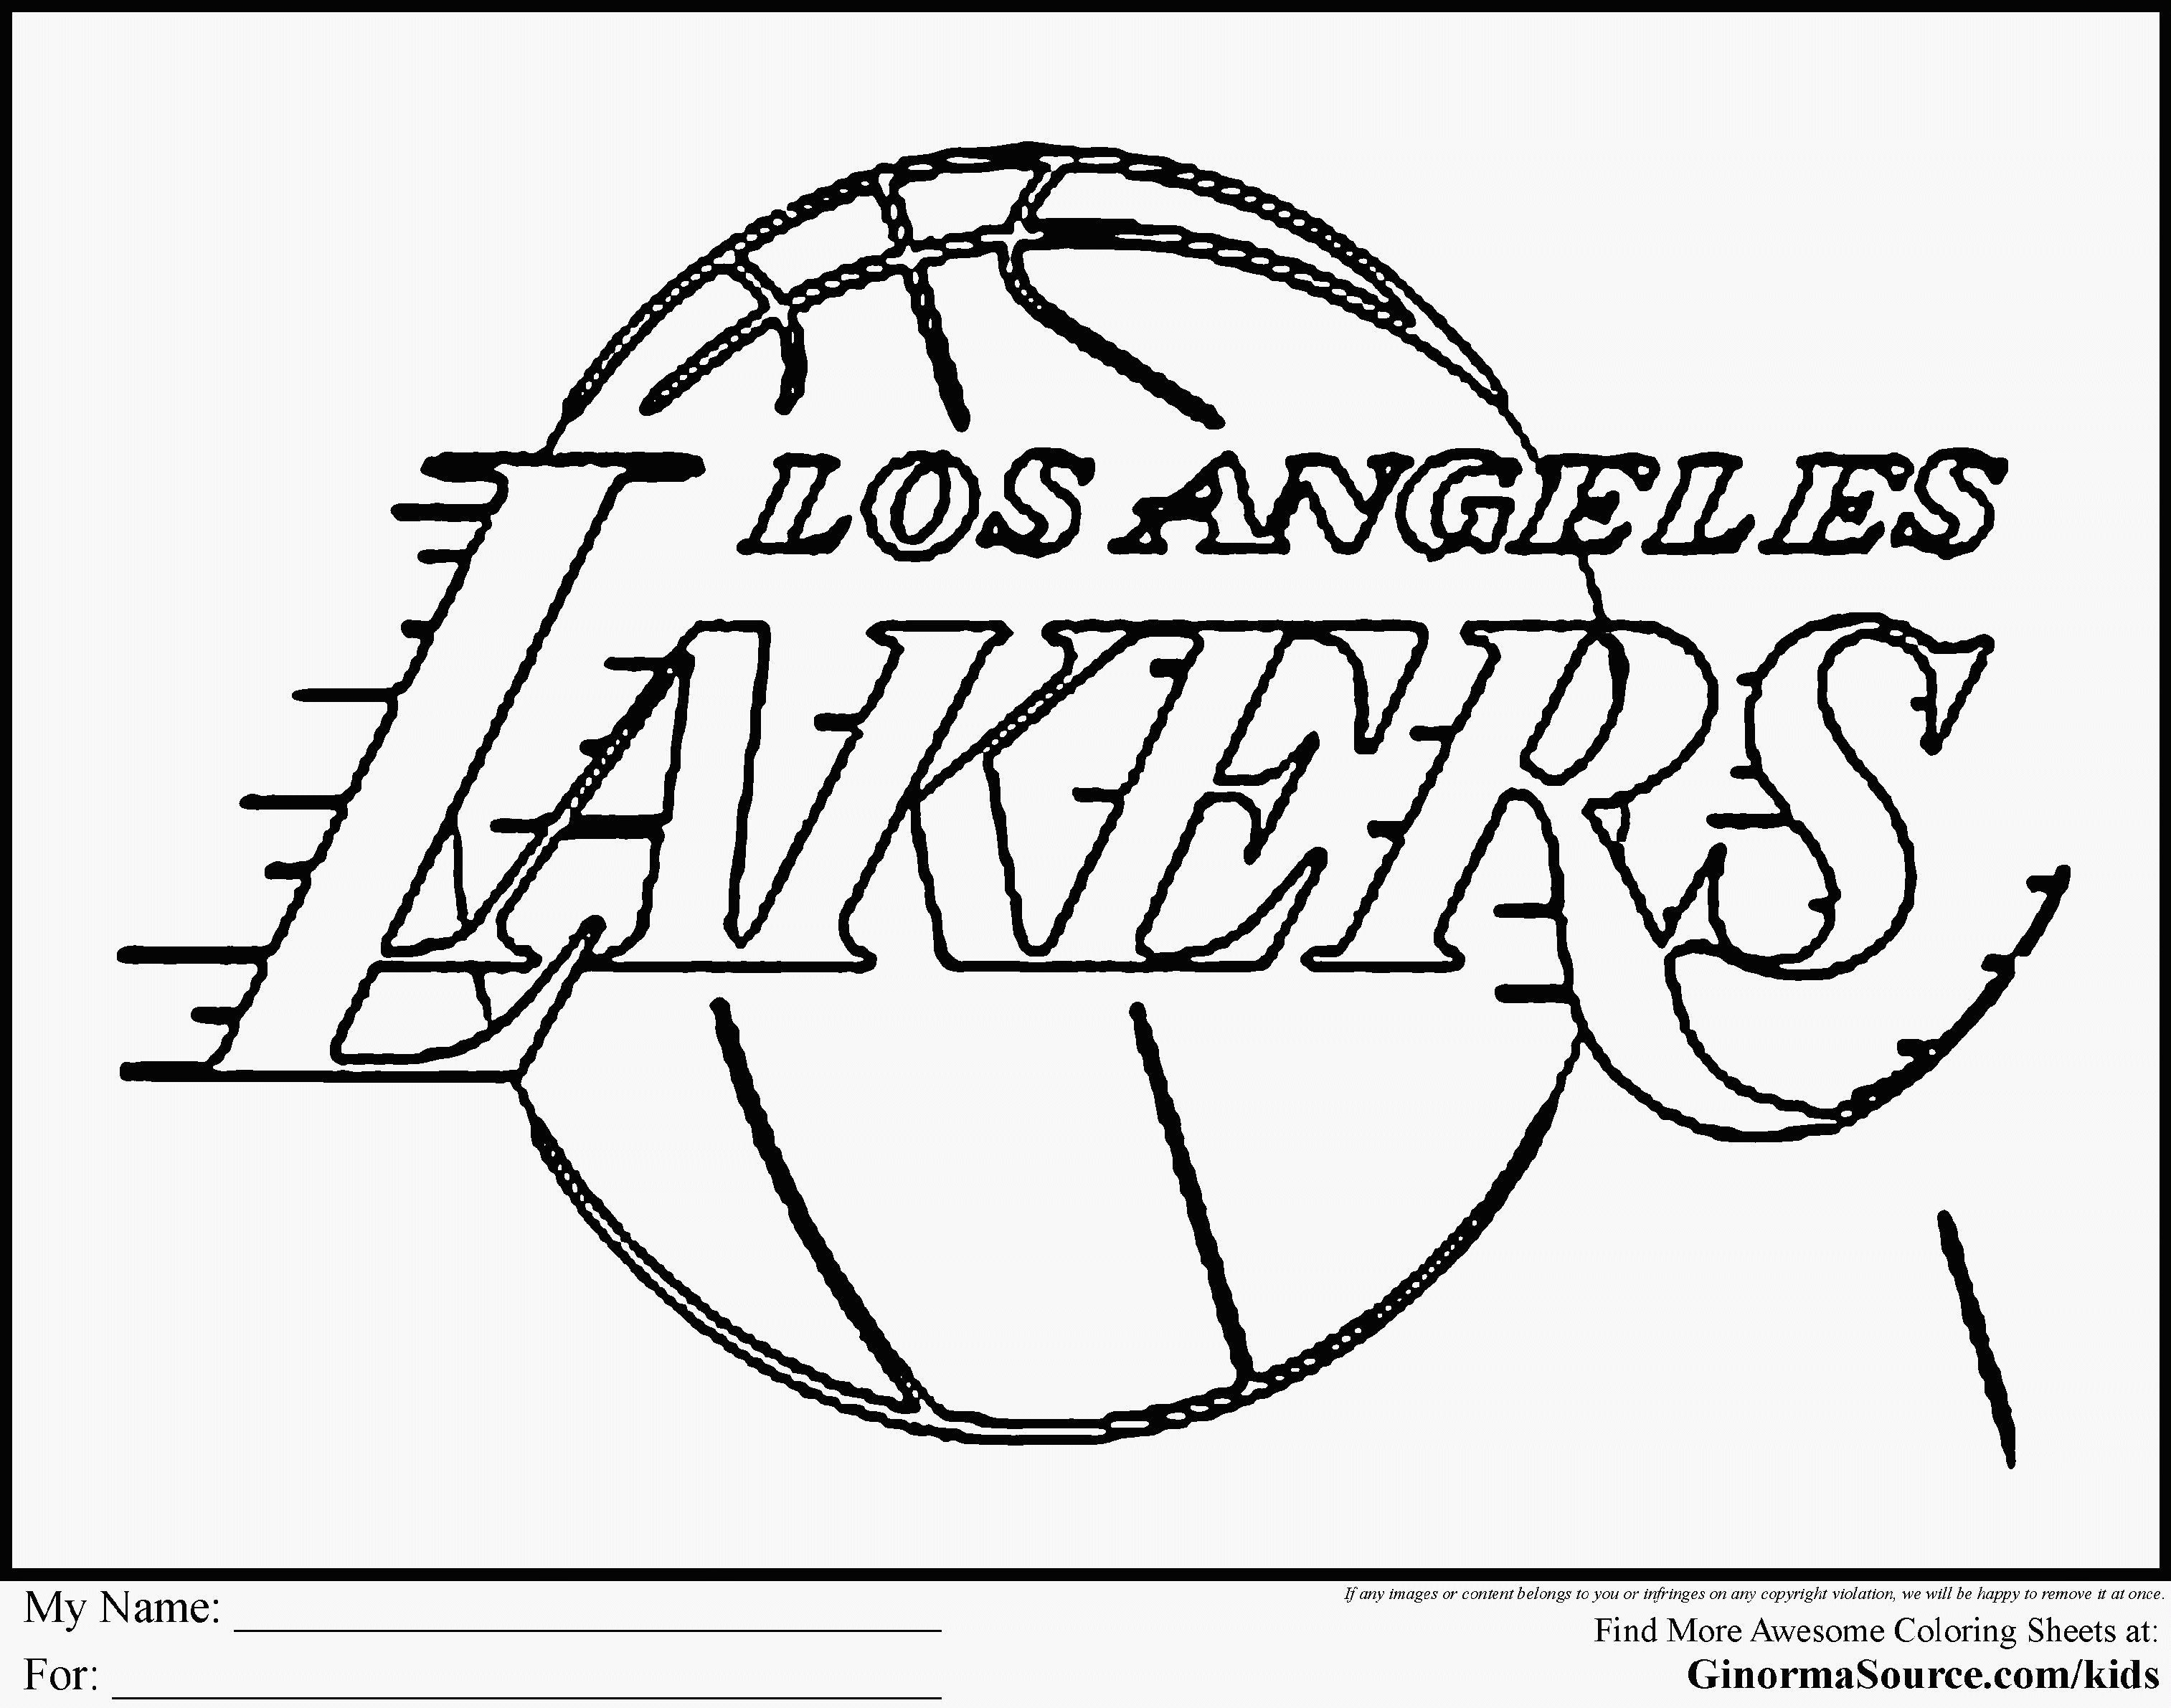 25 Coloring Pages Basketball Player Coloring Pages Coloring Pages For Boys Lakers Logo